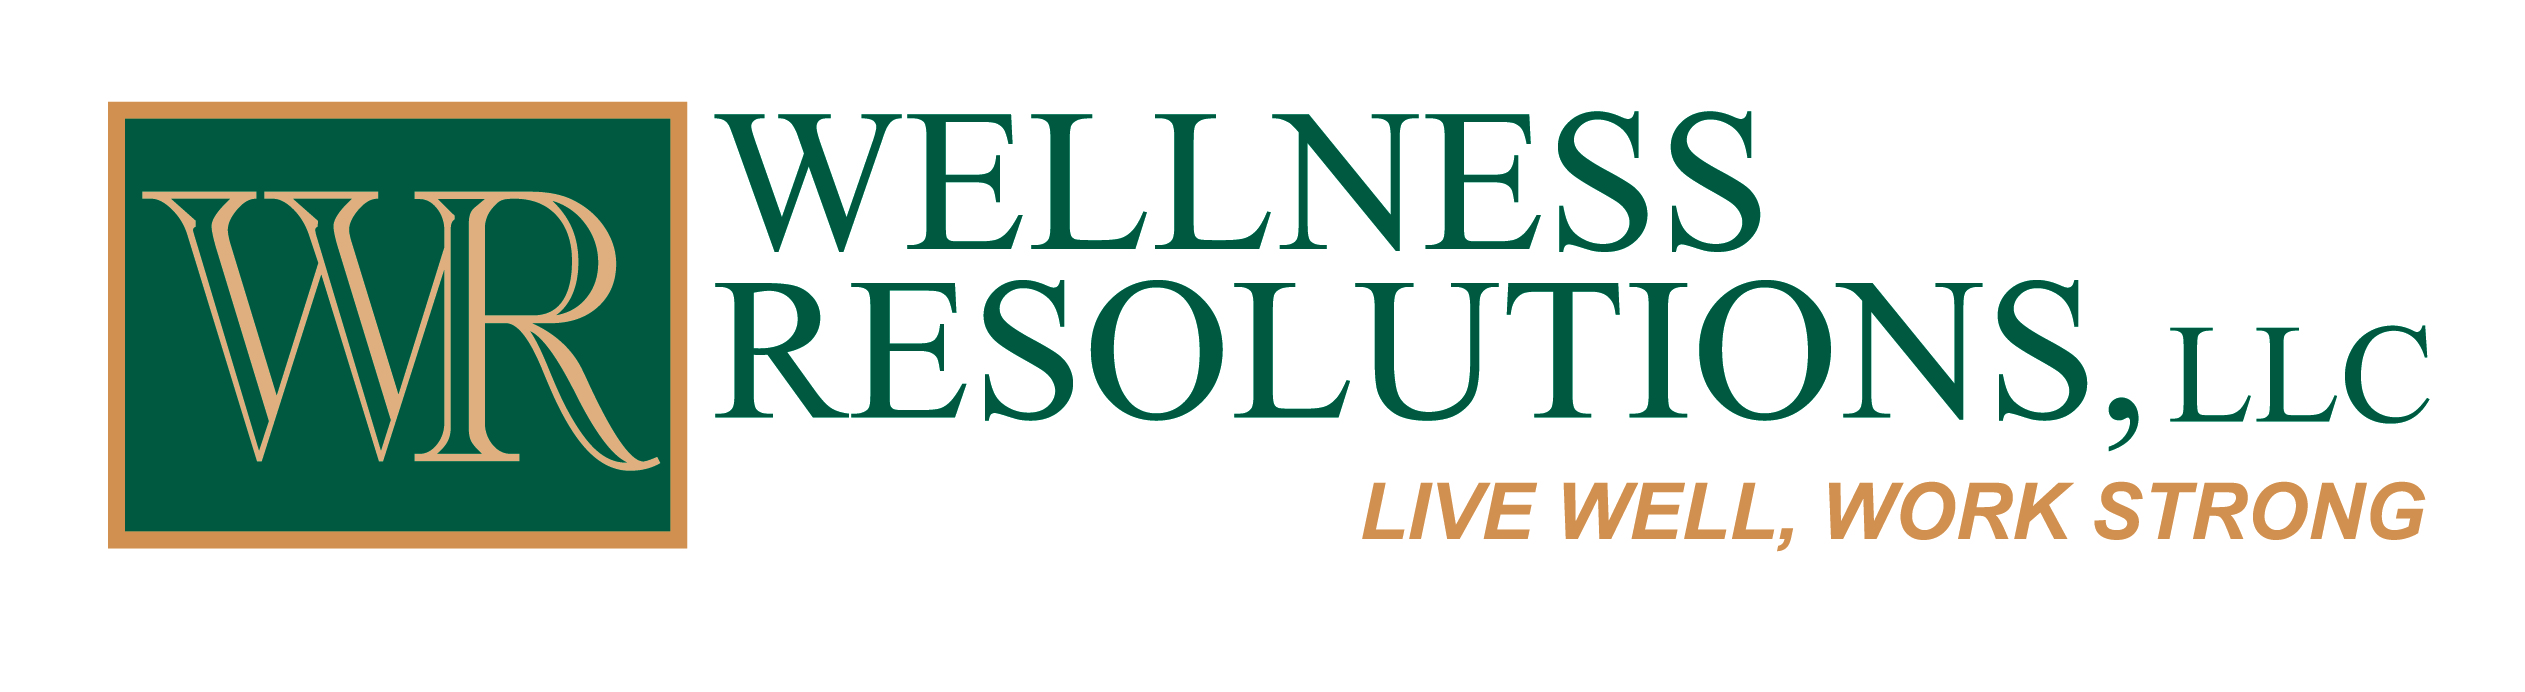 Wellness Resolutions, LLC